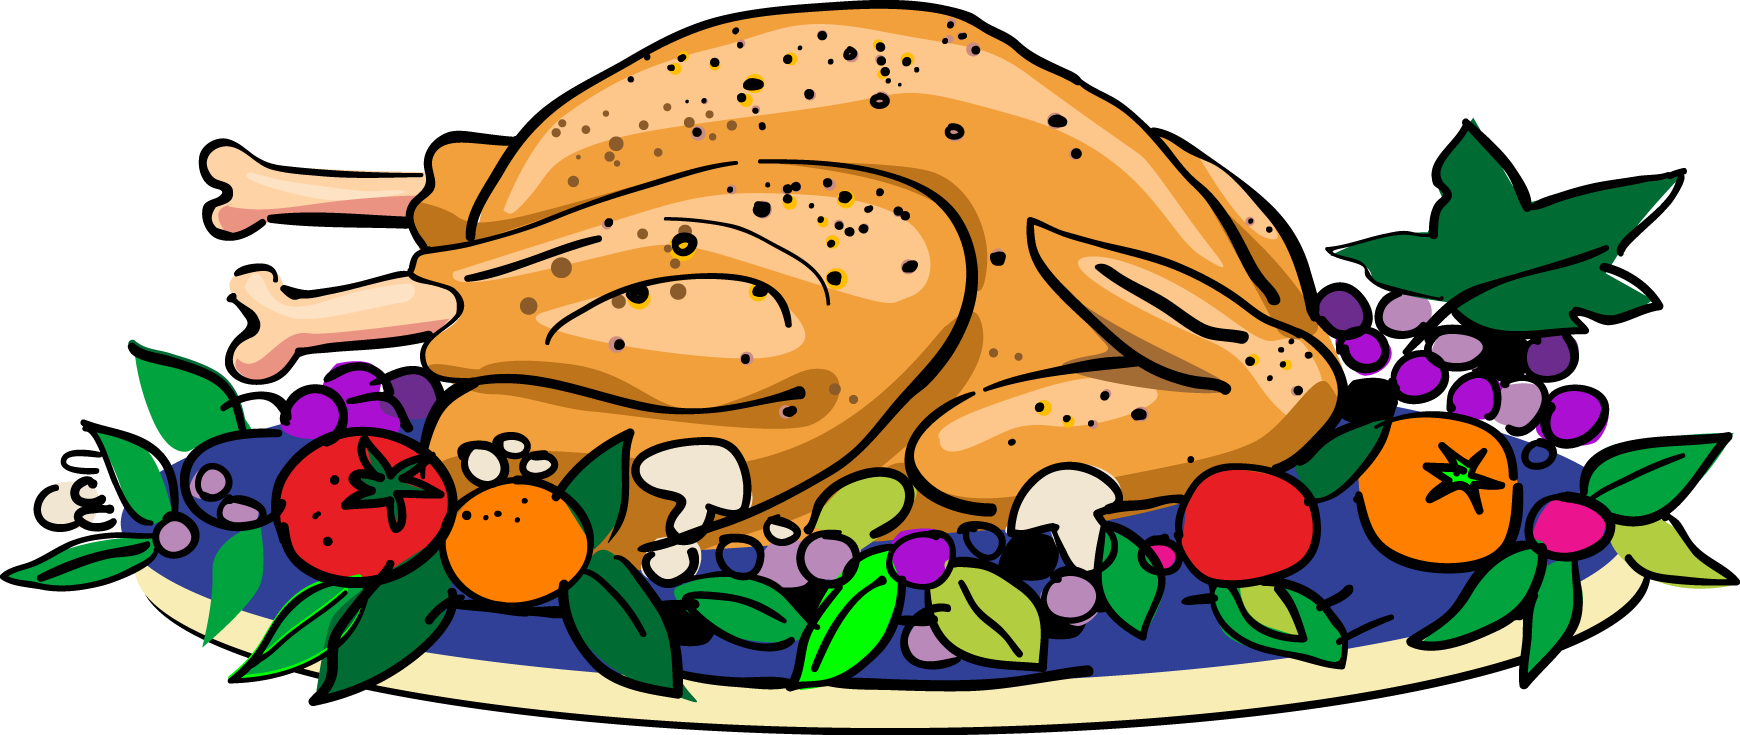 free clipart chicken dinner - photo #25